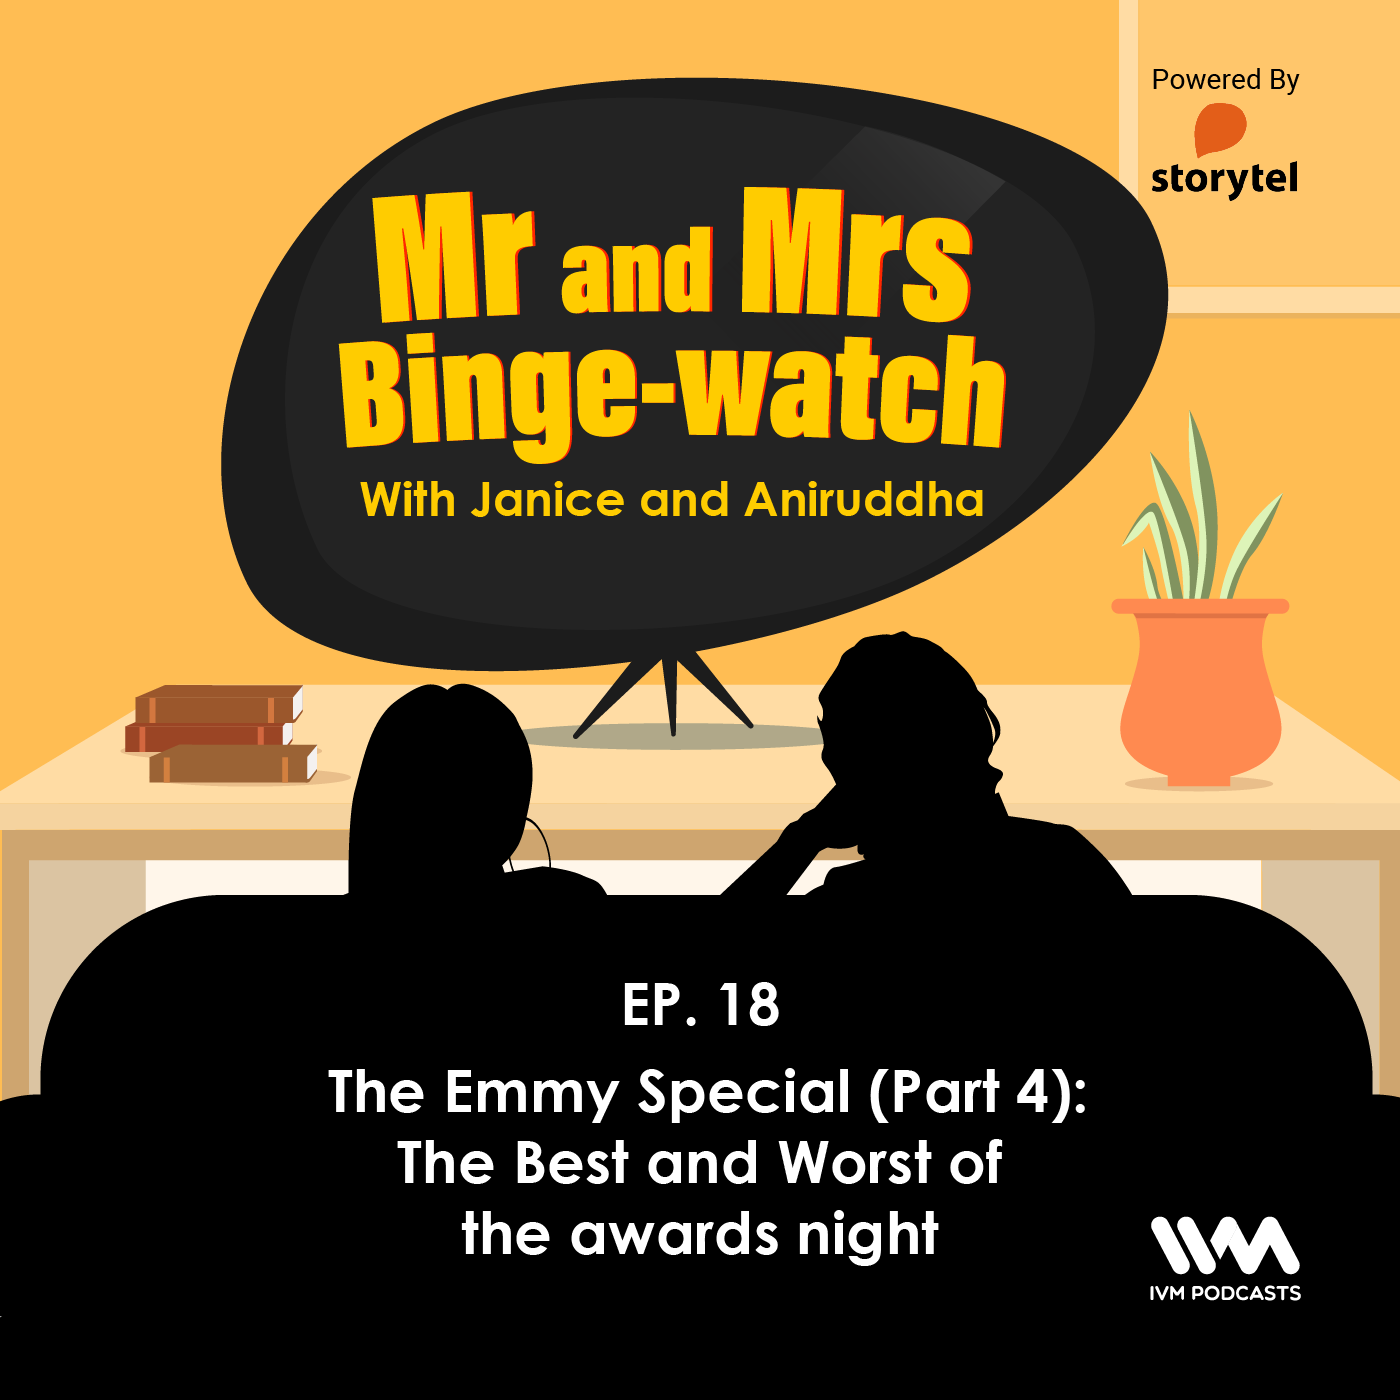 Ep. 18: The Emmy Special (Part 4): The Best and Worst of the awards night